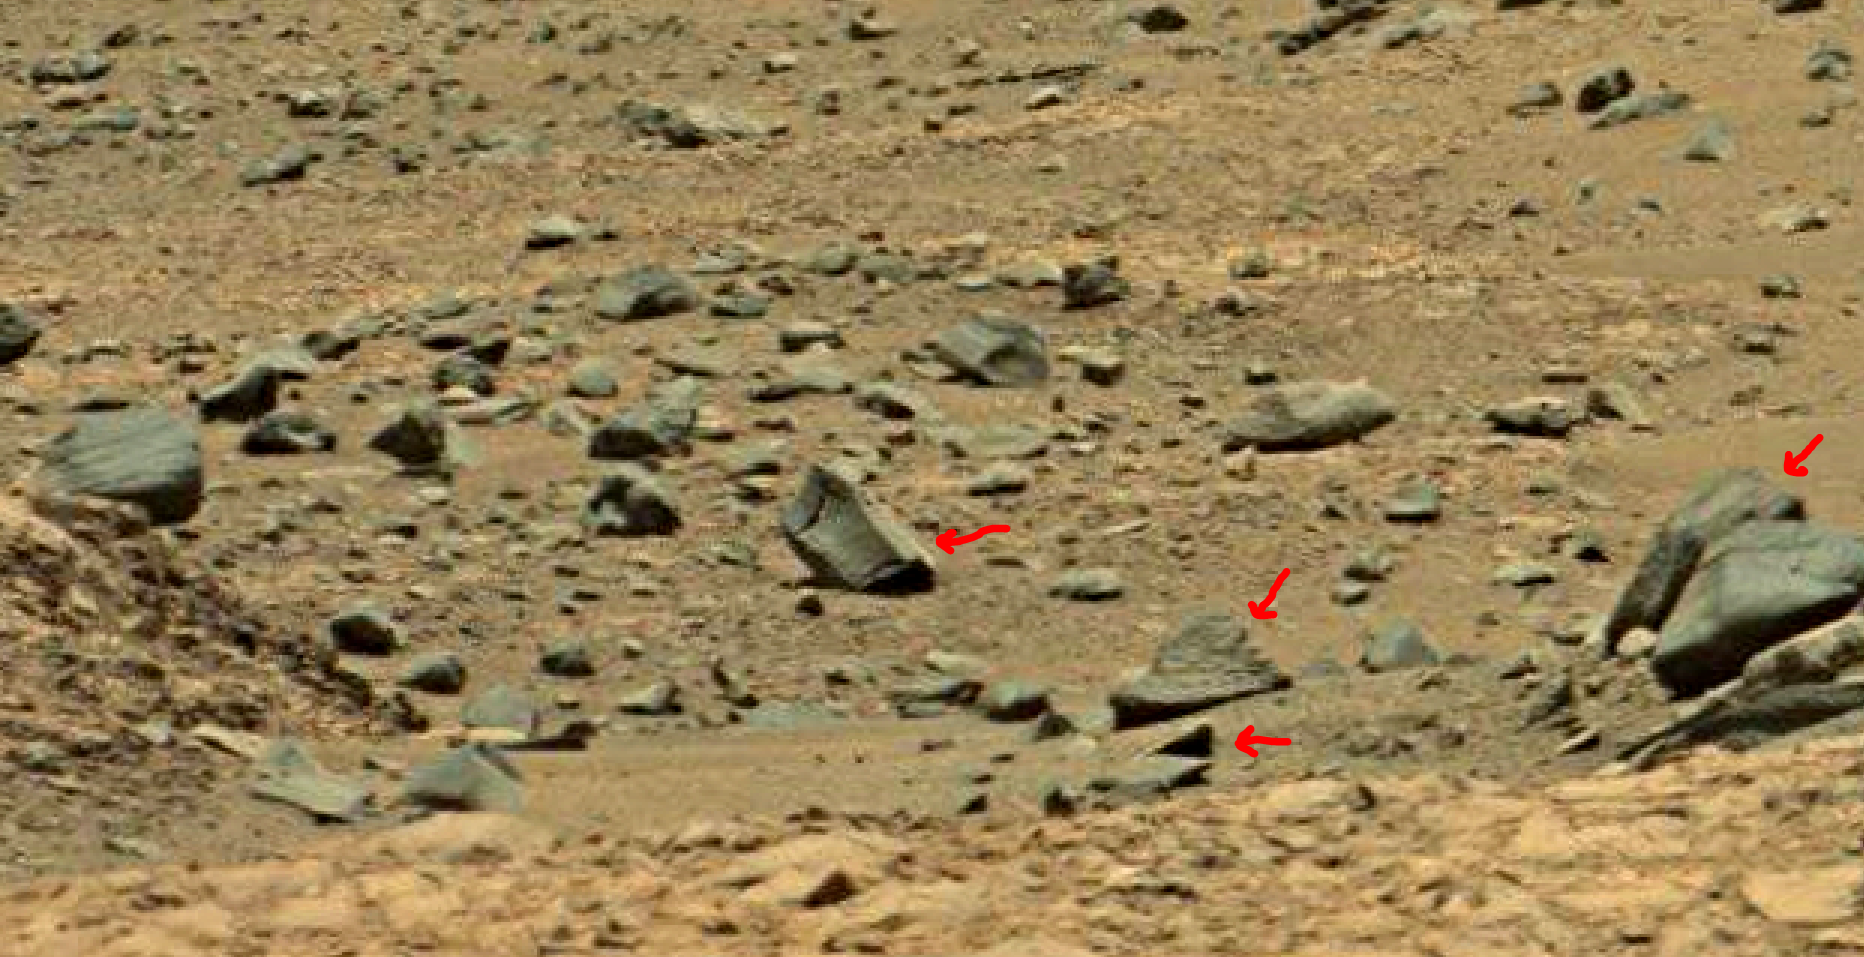 mars sol 1378 anomaly-artifacts 4a was life on mars